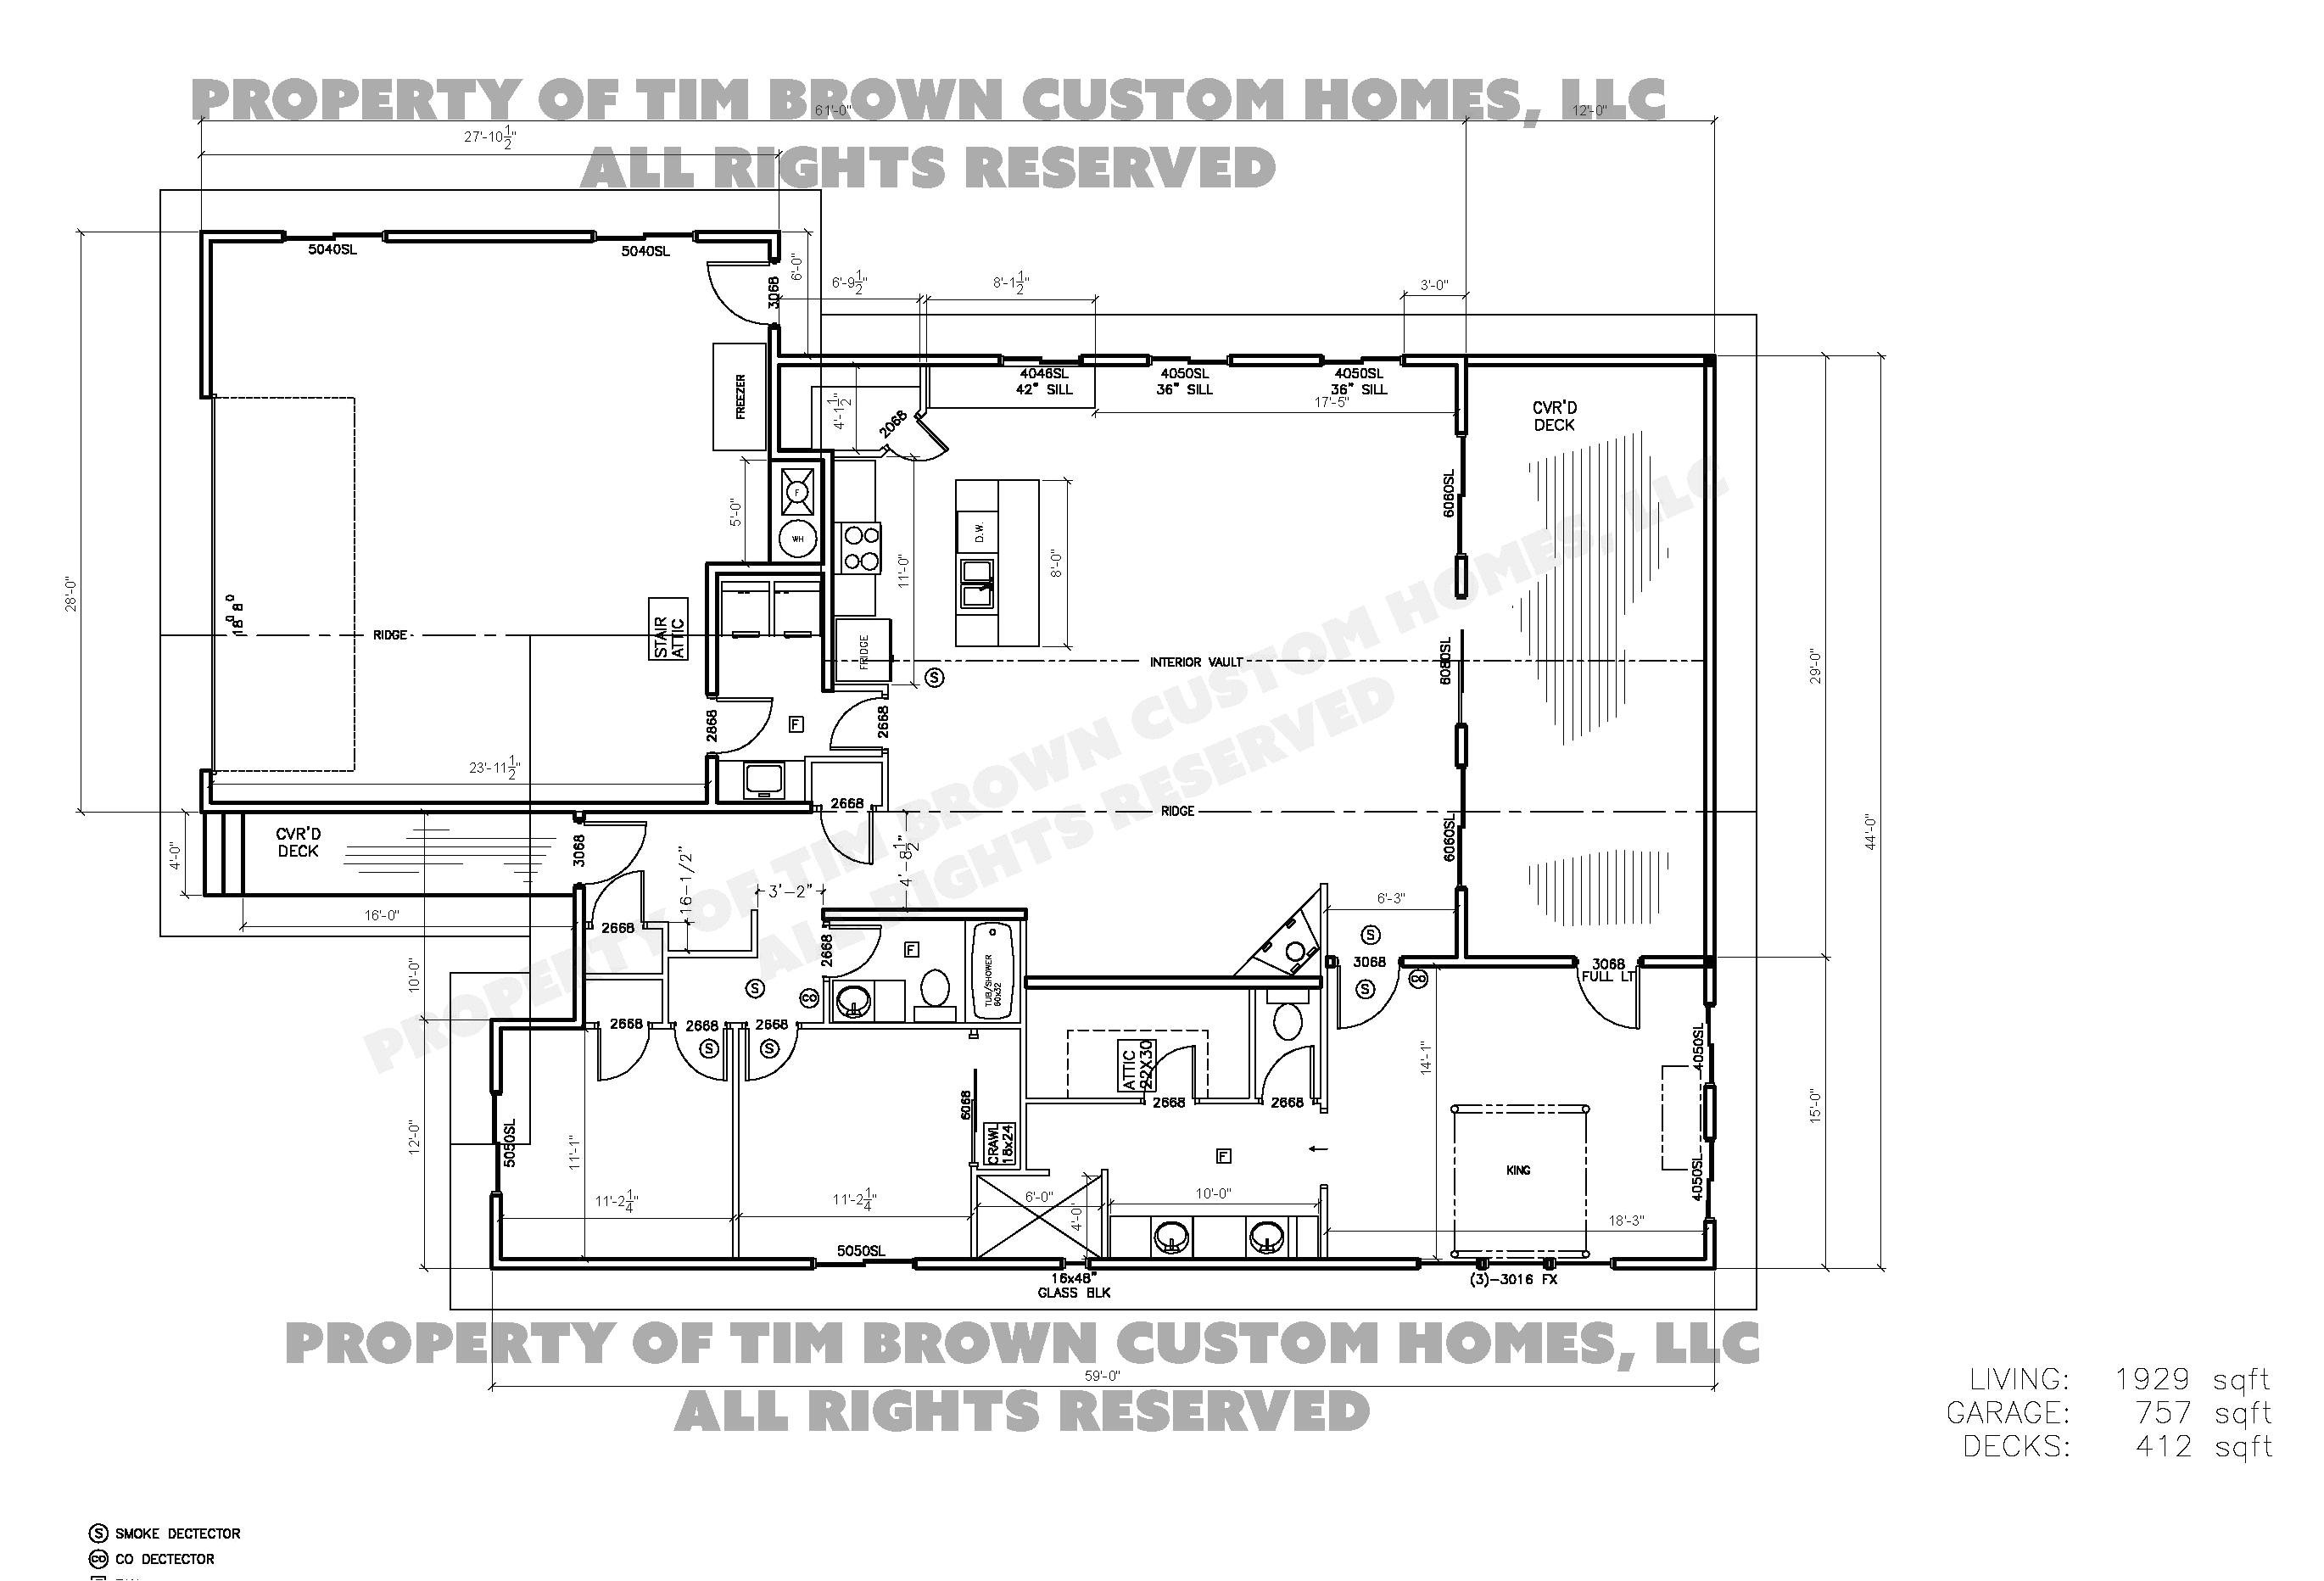 nohl crest homes floor plans unique new page 837 floor plans 17